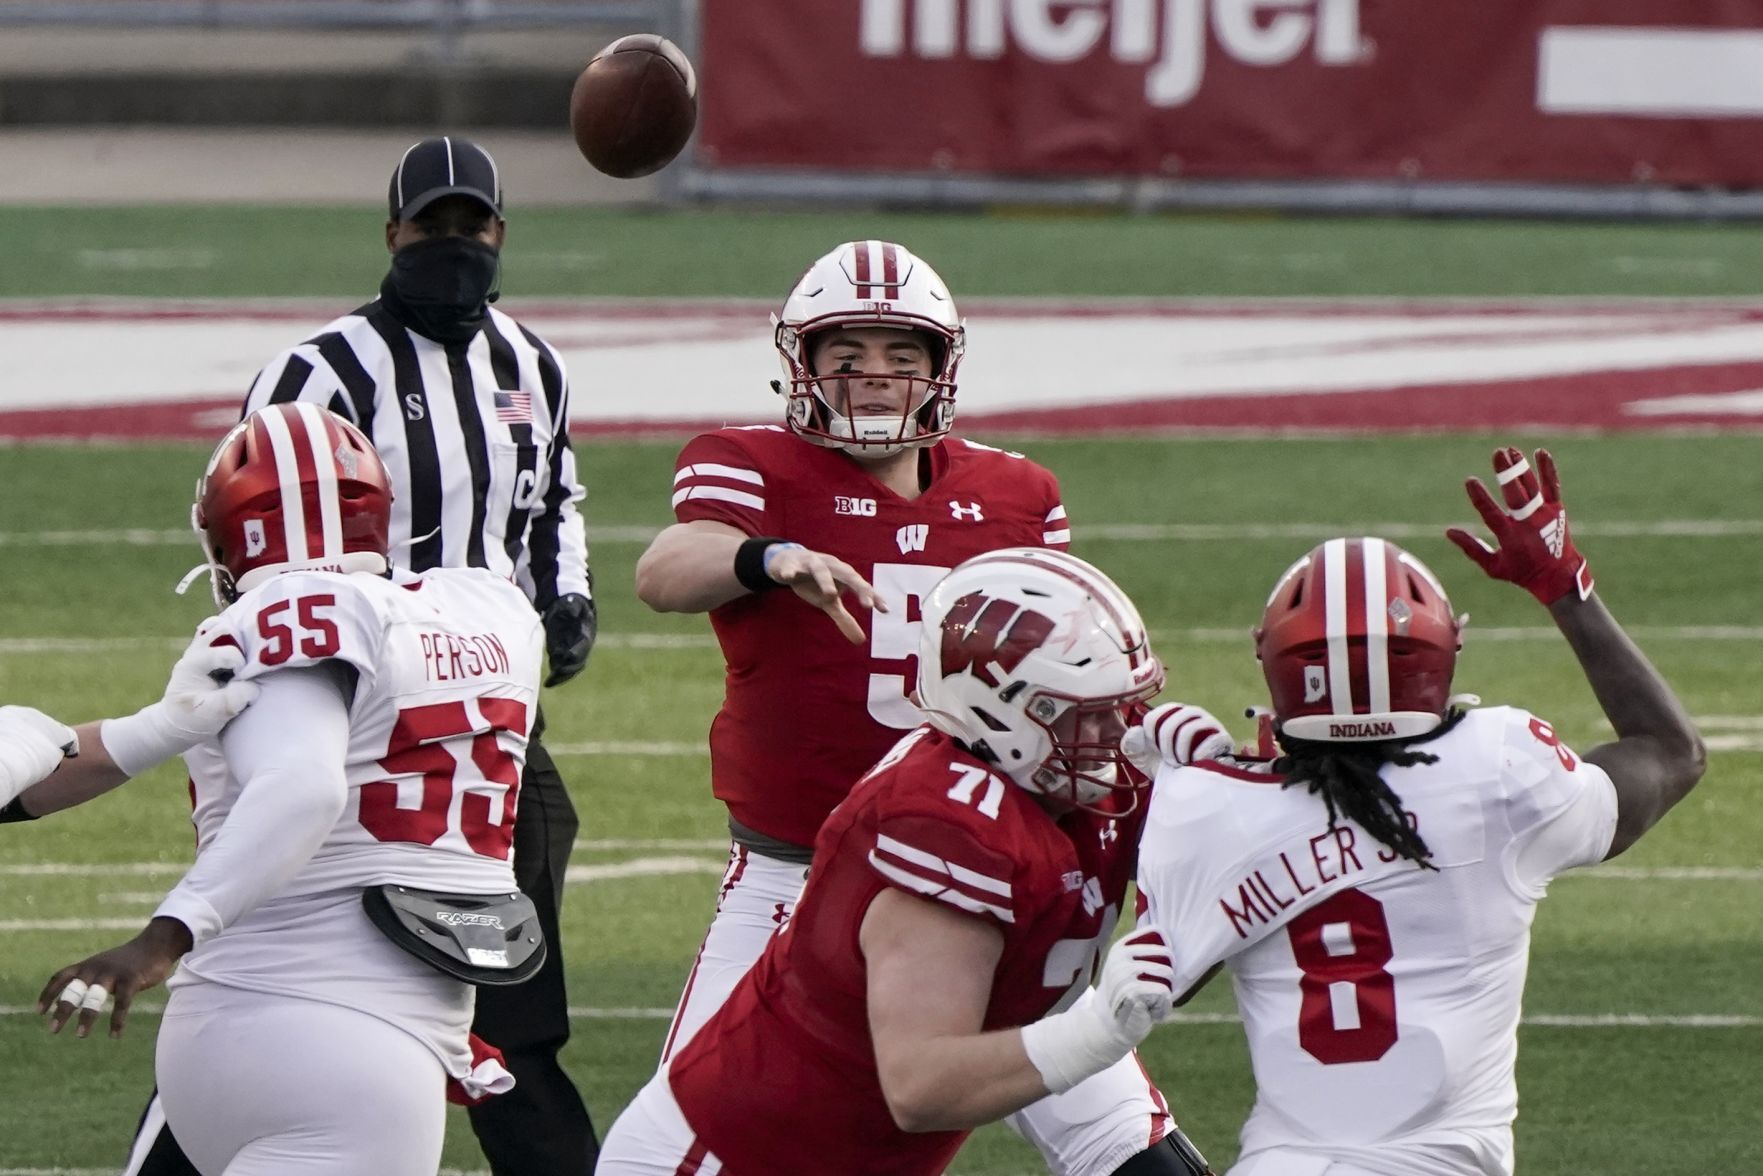 Missed connection: Wisconsin Badgers' comeback effort denied as ...